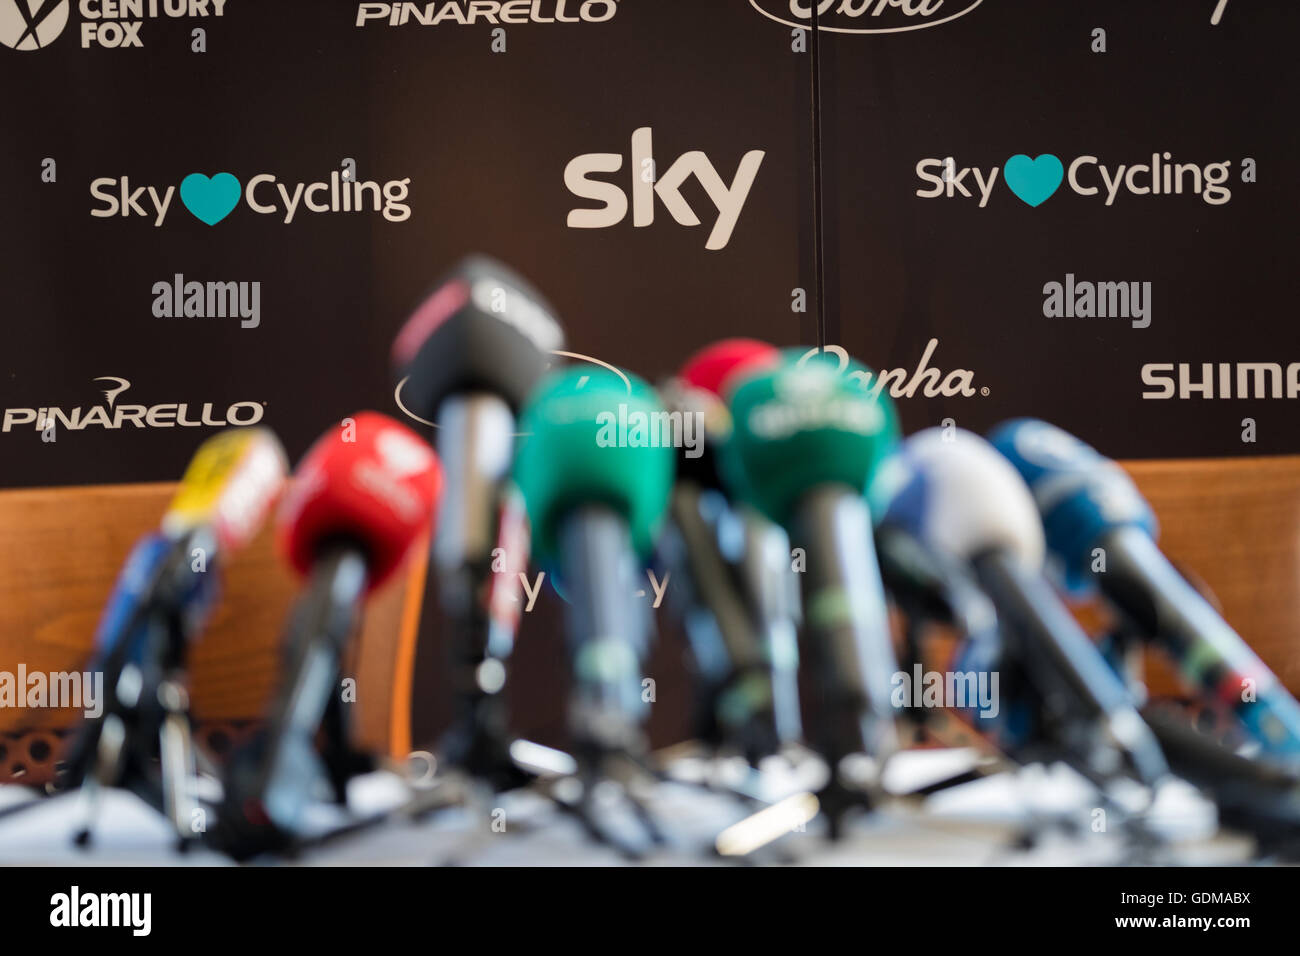 c8.alamy.com/comp/GDMABX/hilterfingen-switzerland-19th-july-2016-at-the-team-sky-press-conference-GDMABX.jpg